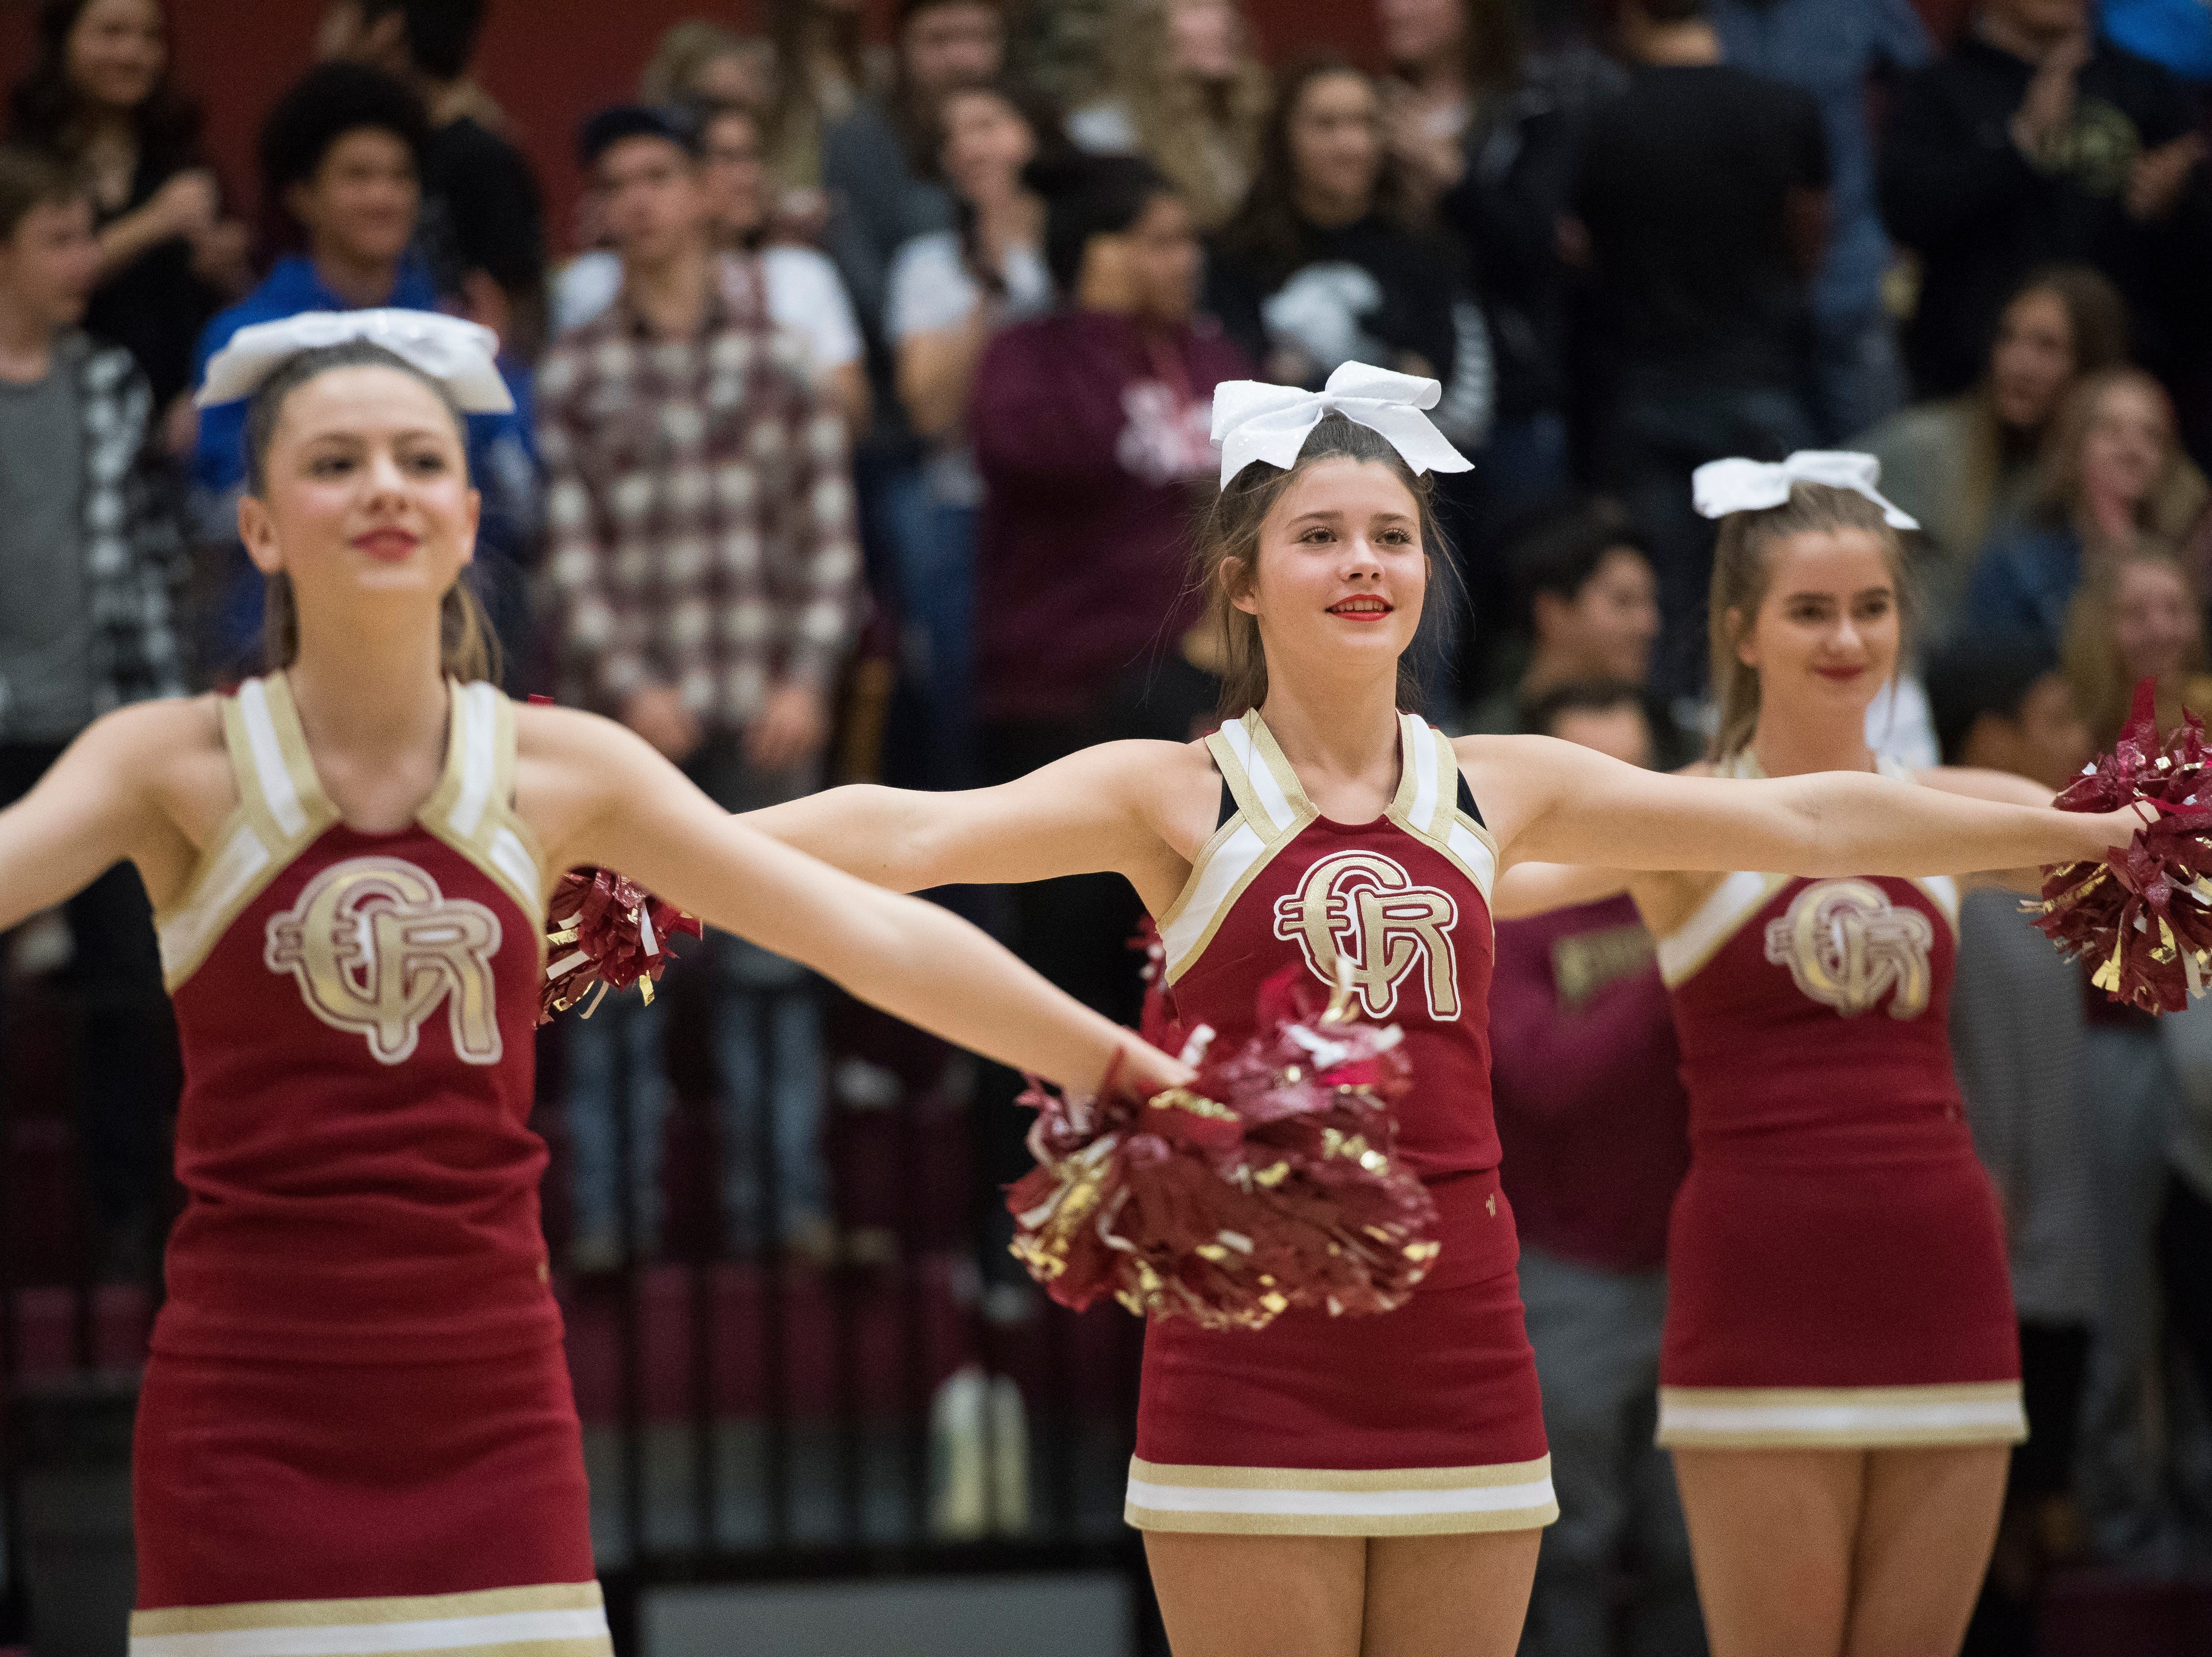 Cedar High School cheerleaders perform during halftime of the game against Lincoln County at CHS Wednesday, December 12, 2018. The Redmen won, 80-54.